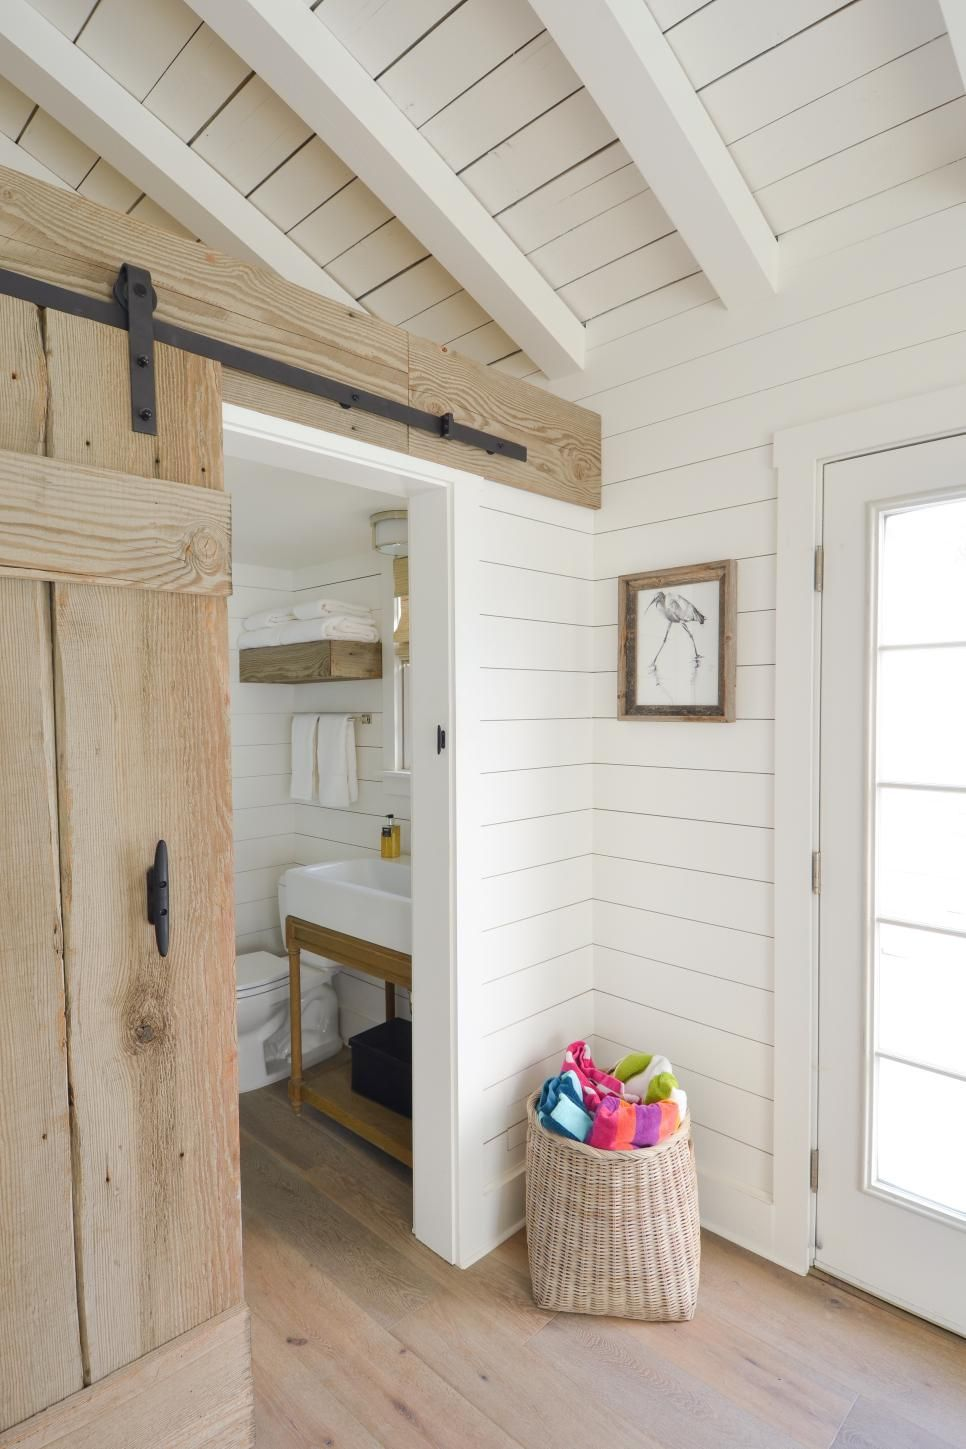 Whitewashed Wood Panels Cover The Walls And Ceiling Of This Cottage A Rustic Barn Door Slides Open To Rustic Barn Door Interior Barn Doors Wood Doors Interior